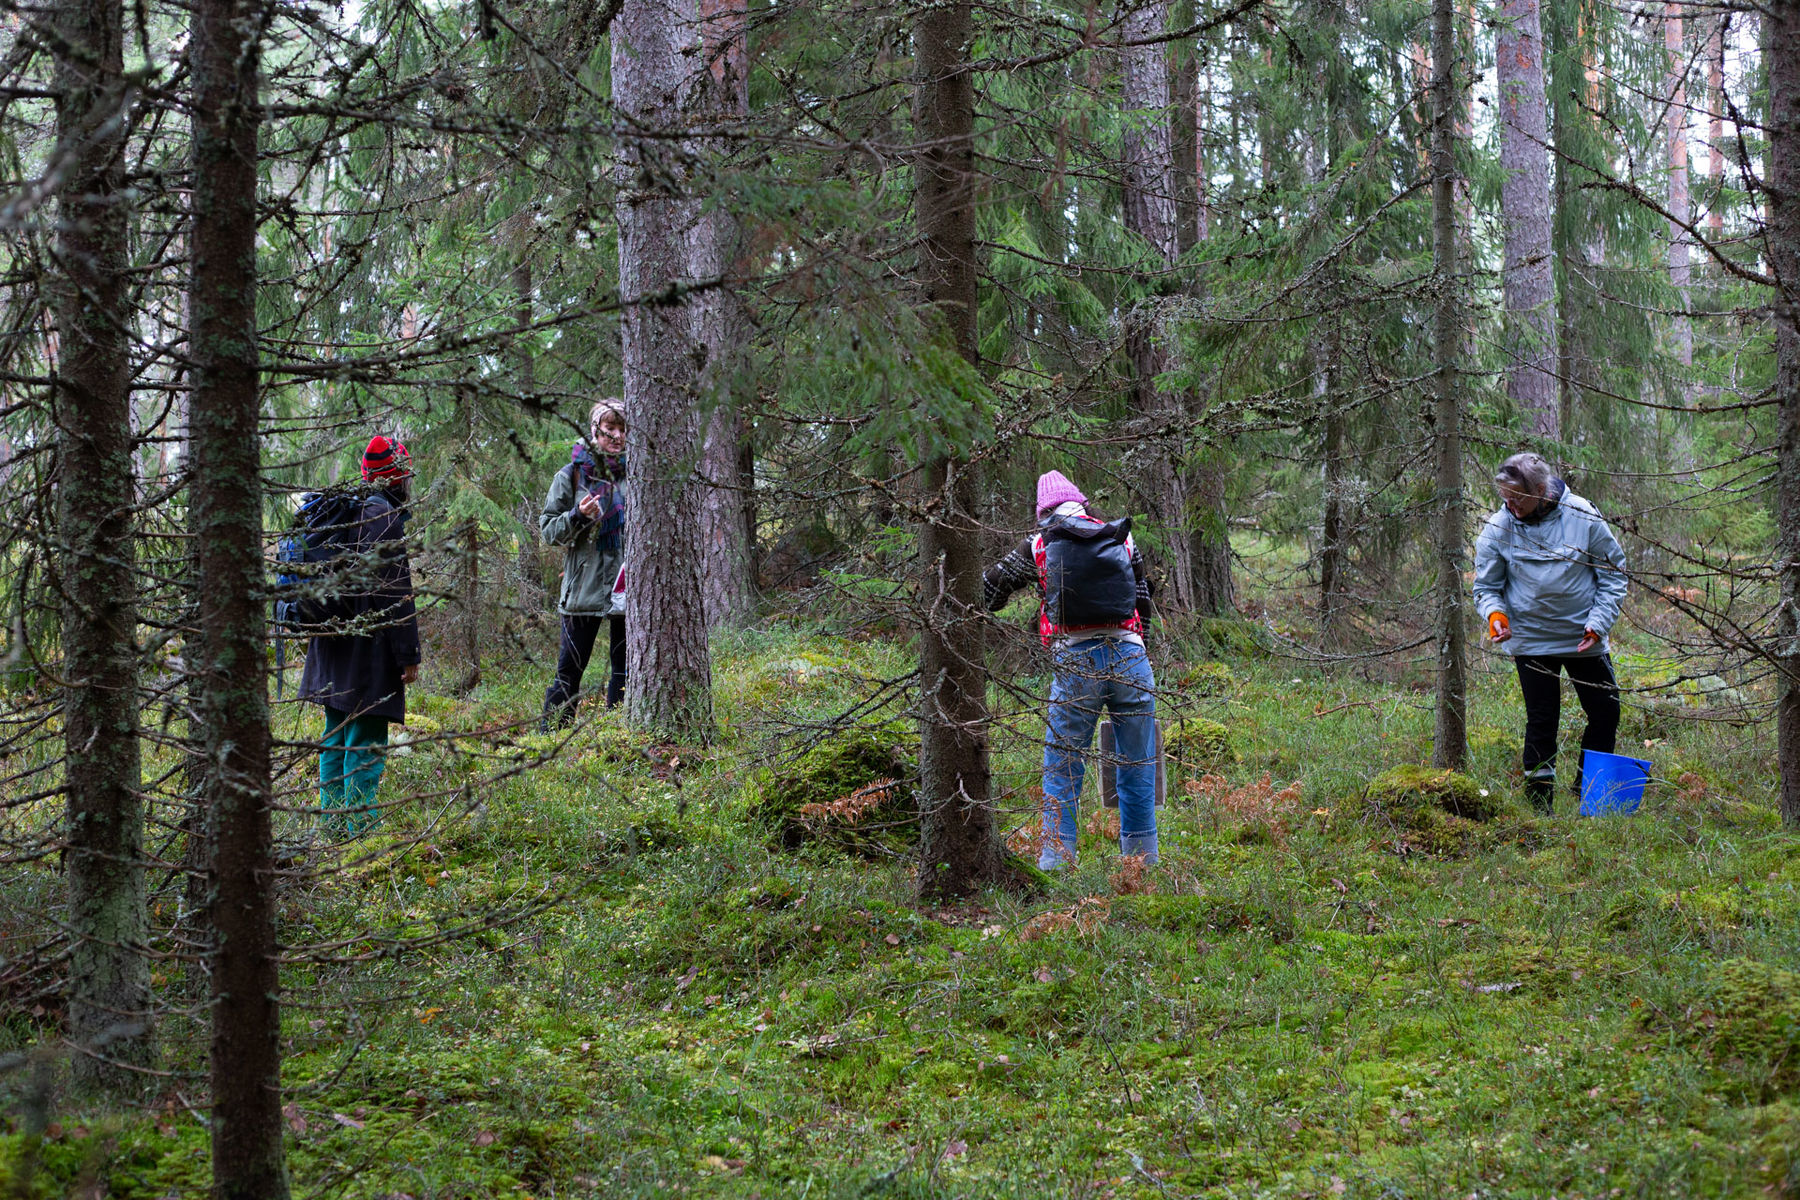 Four ViCCA students stand apart amongst the forest trees looking for mushrooms